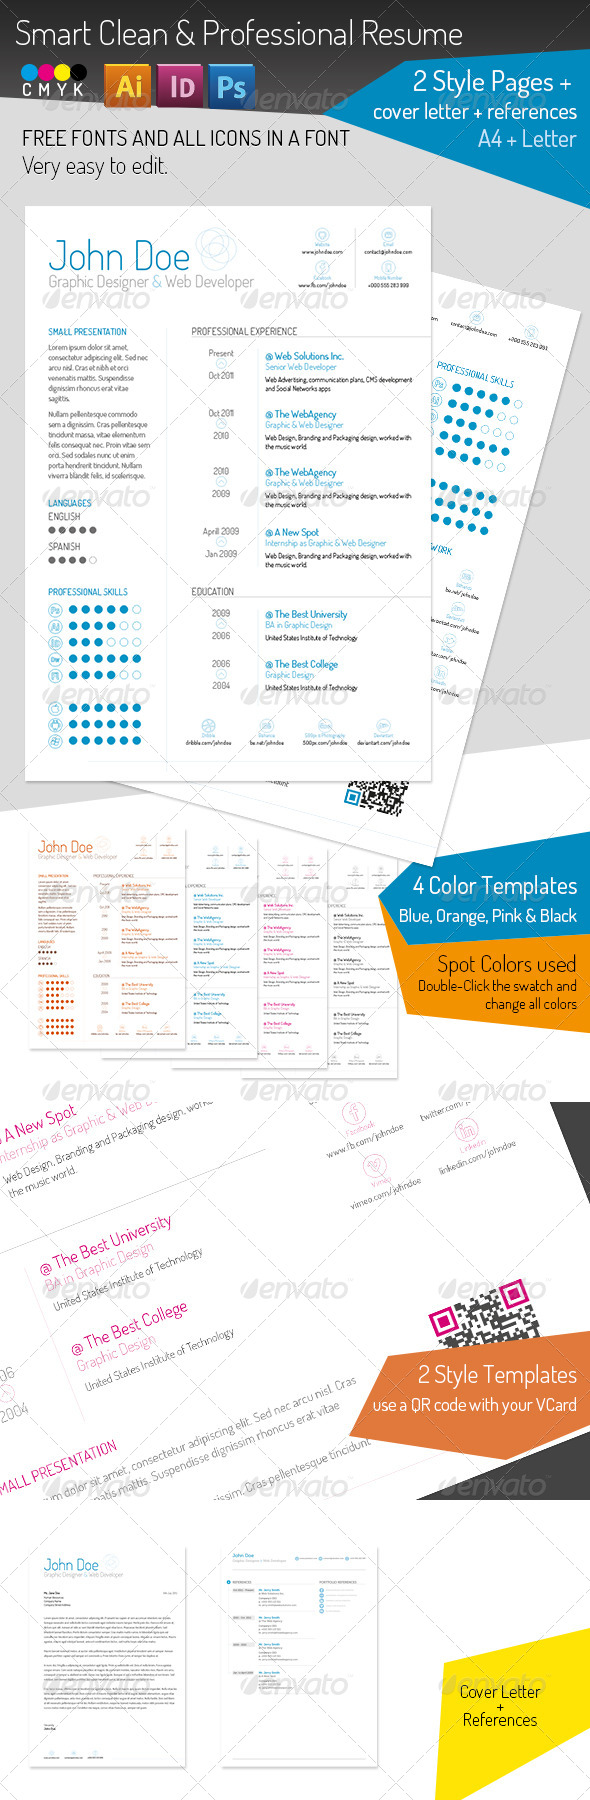 GraphicRiver Smart Clean & Professional Resume 5259017